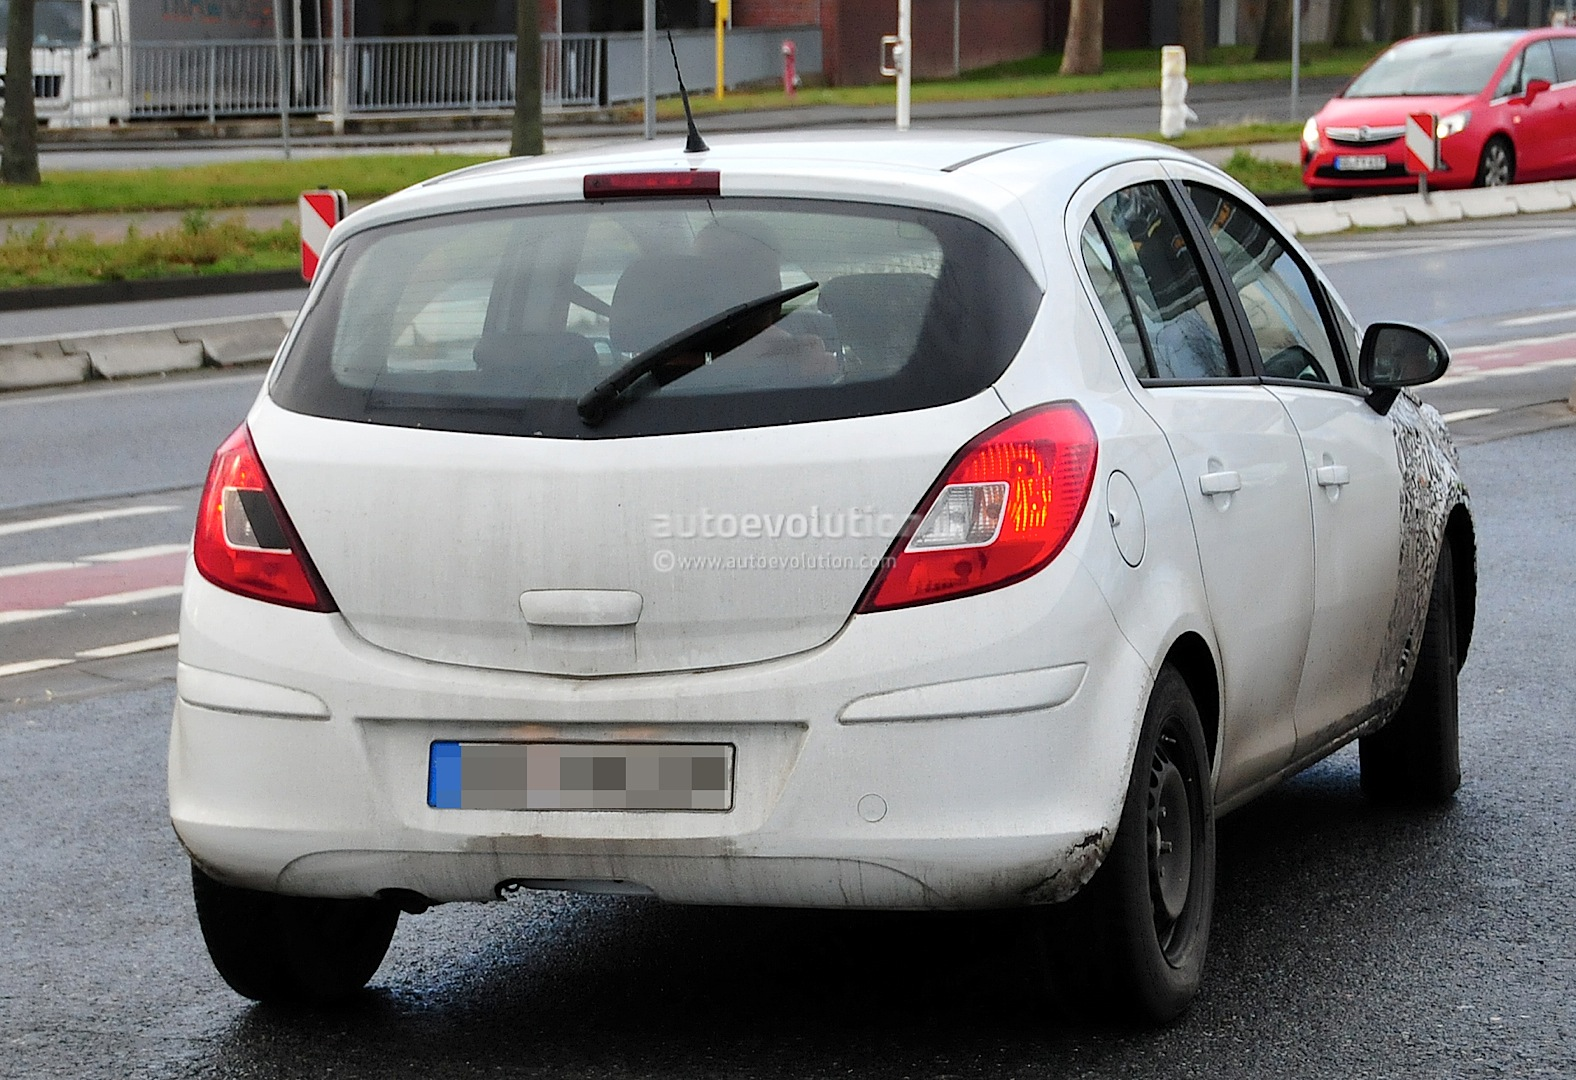 spyshots 2014 opel corsa facelift interior new dash and. Black Bedroom Furniture Sets. Home Design Ideas